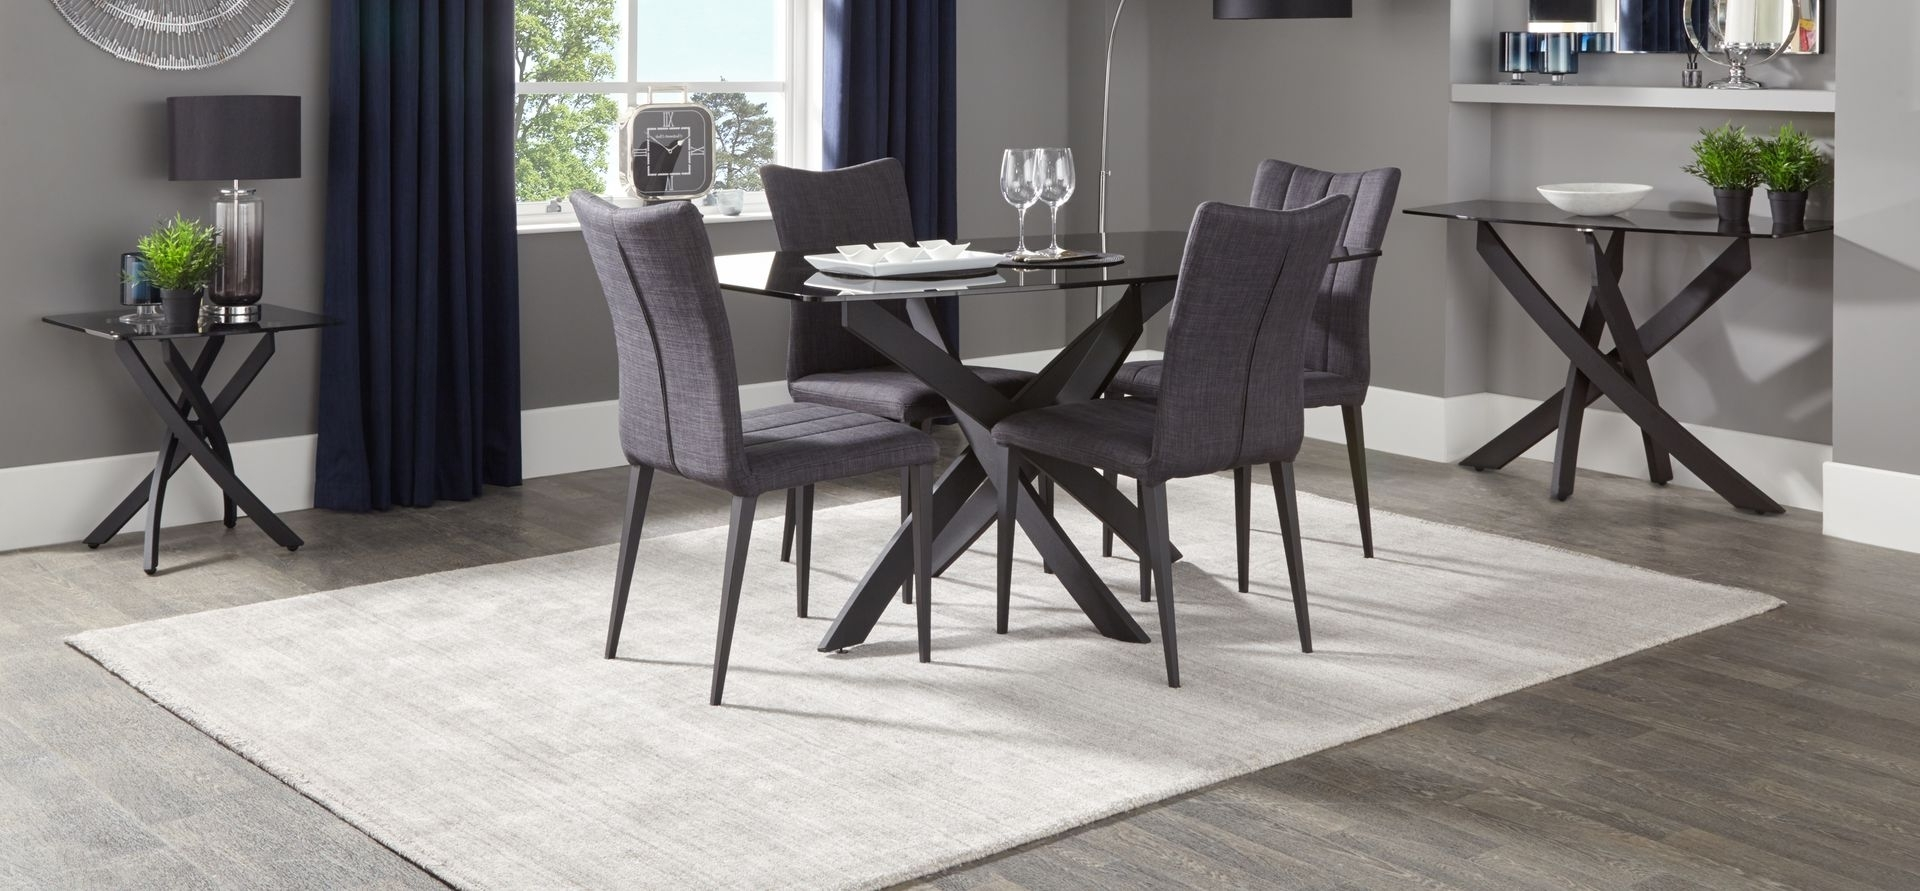 Scs Dining Room Furniture – Cheekybeaglestudios With 2017 Scs Dining Furniture (View 5 of 25)